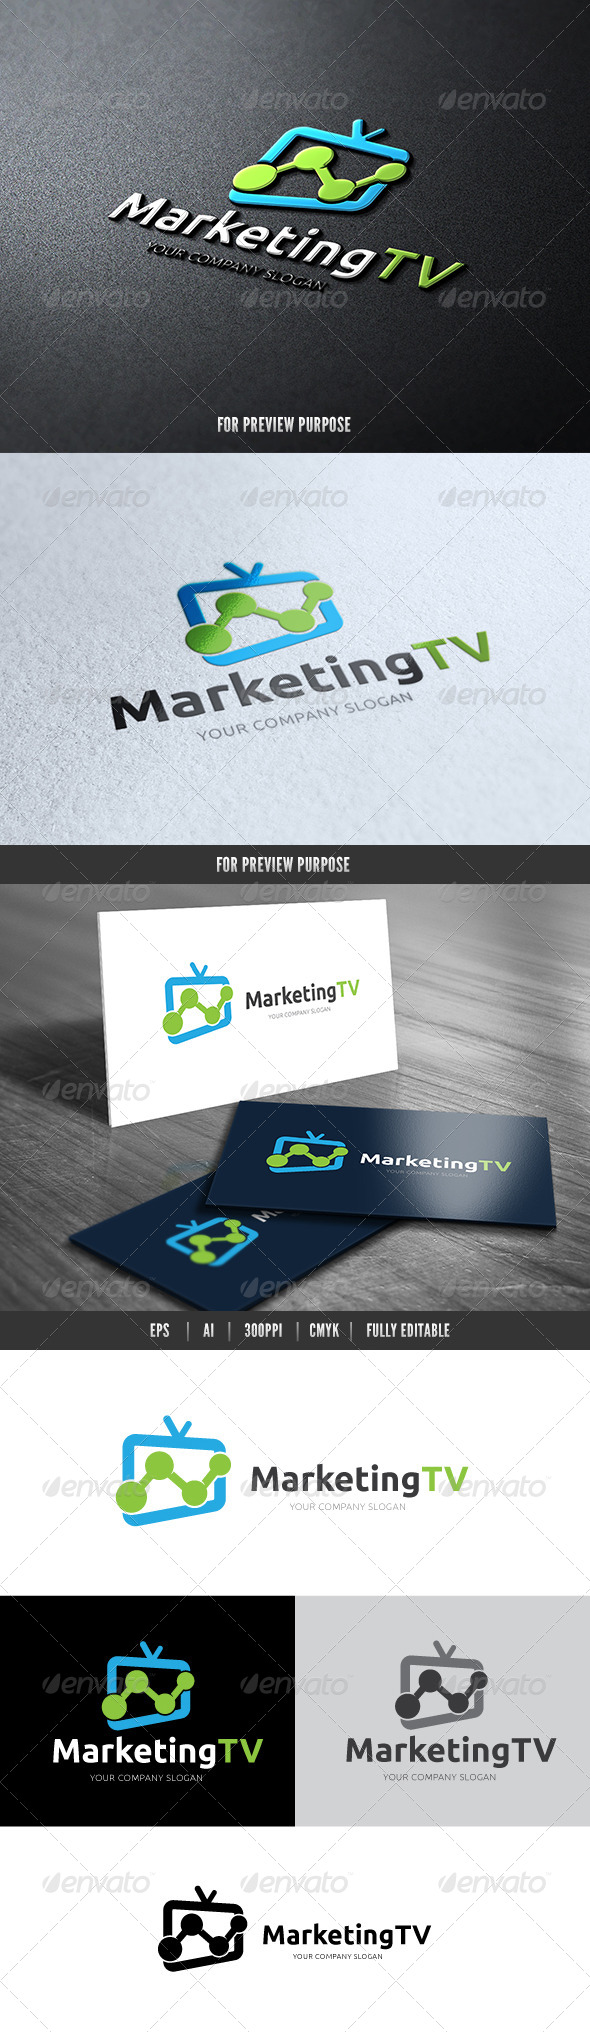 GraphicRiver Marketing TV 7372072